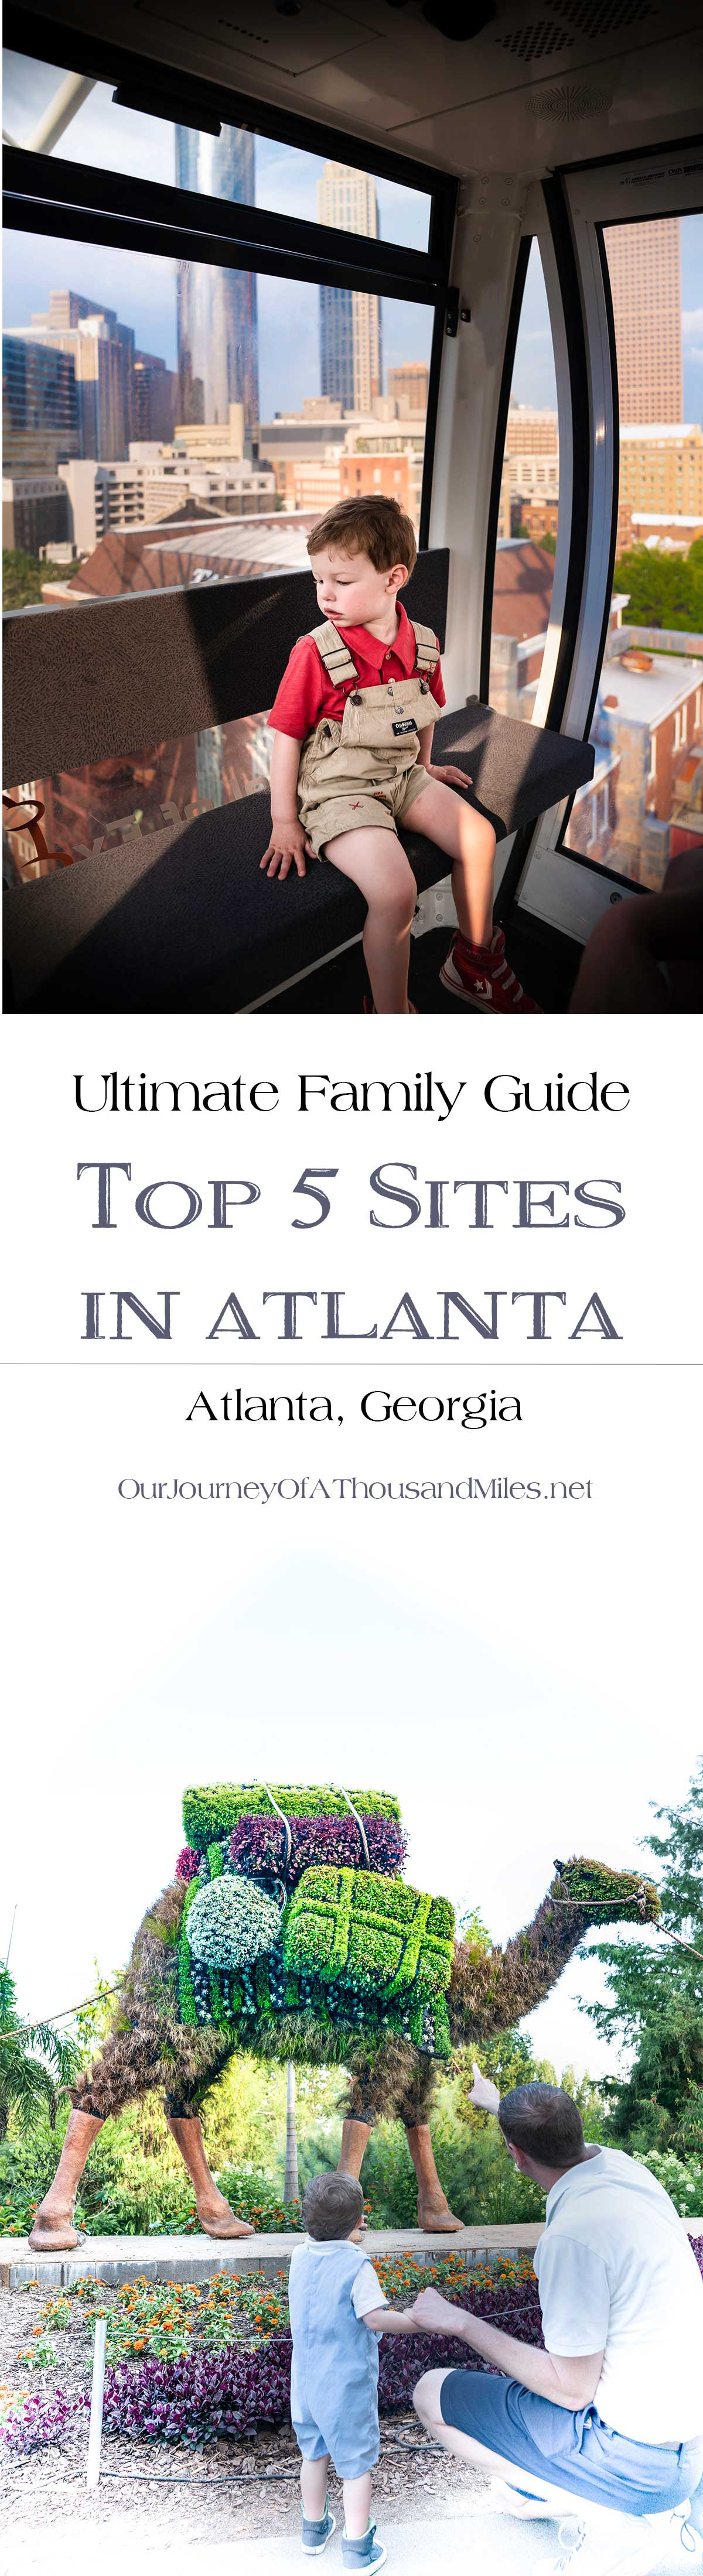 Ultimate-Family-Guide-Top-5-Sites-in-Atlanta